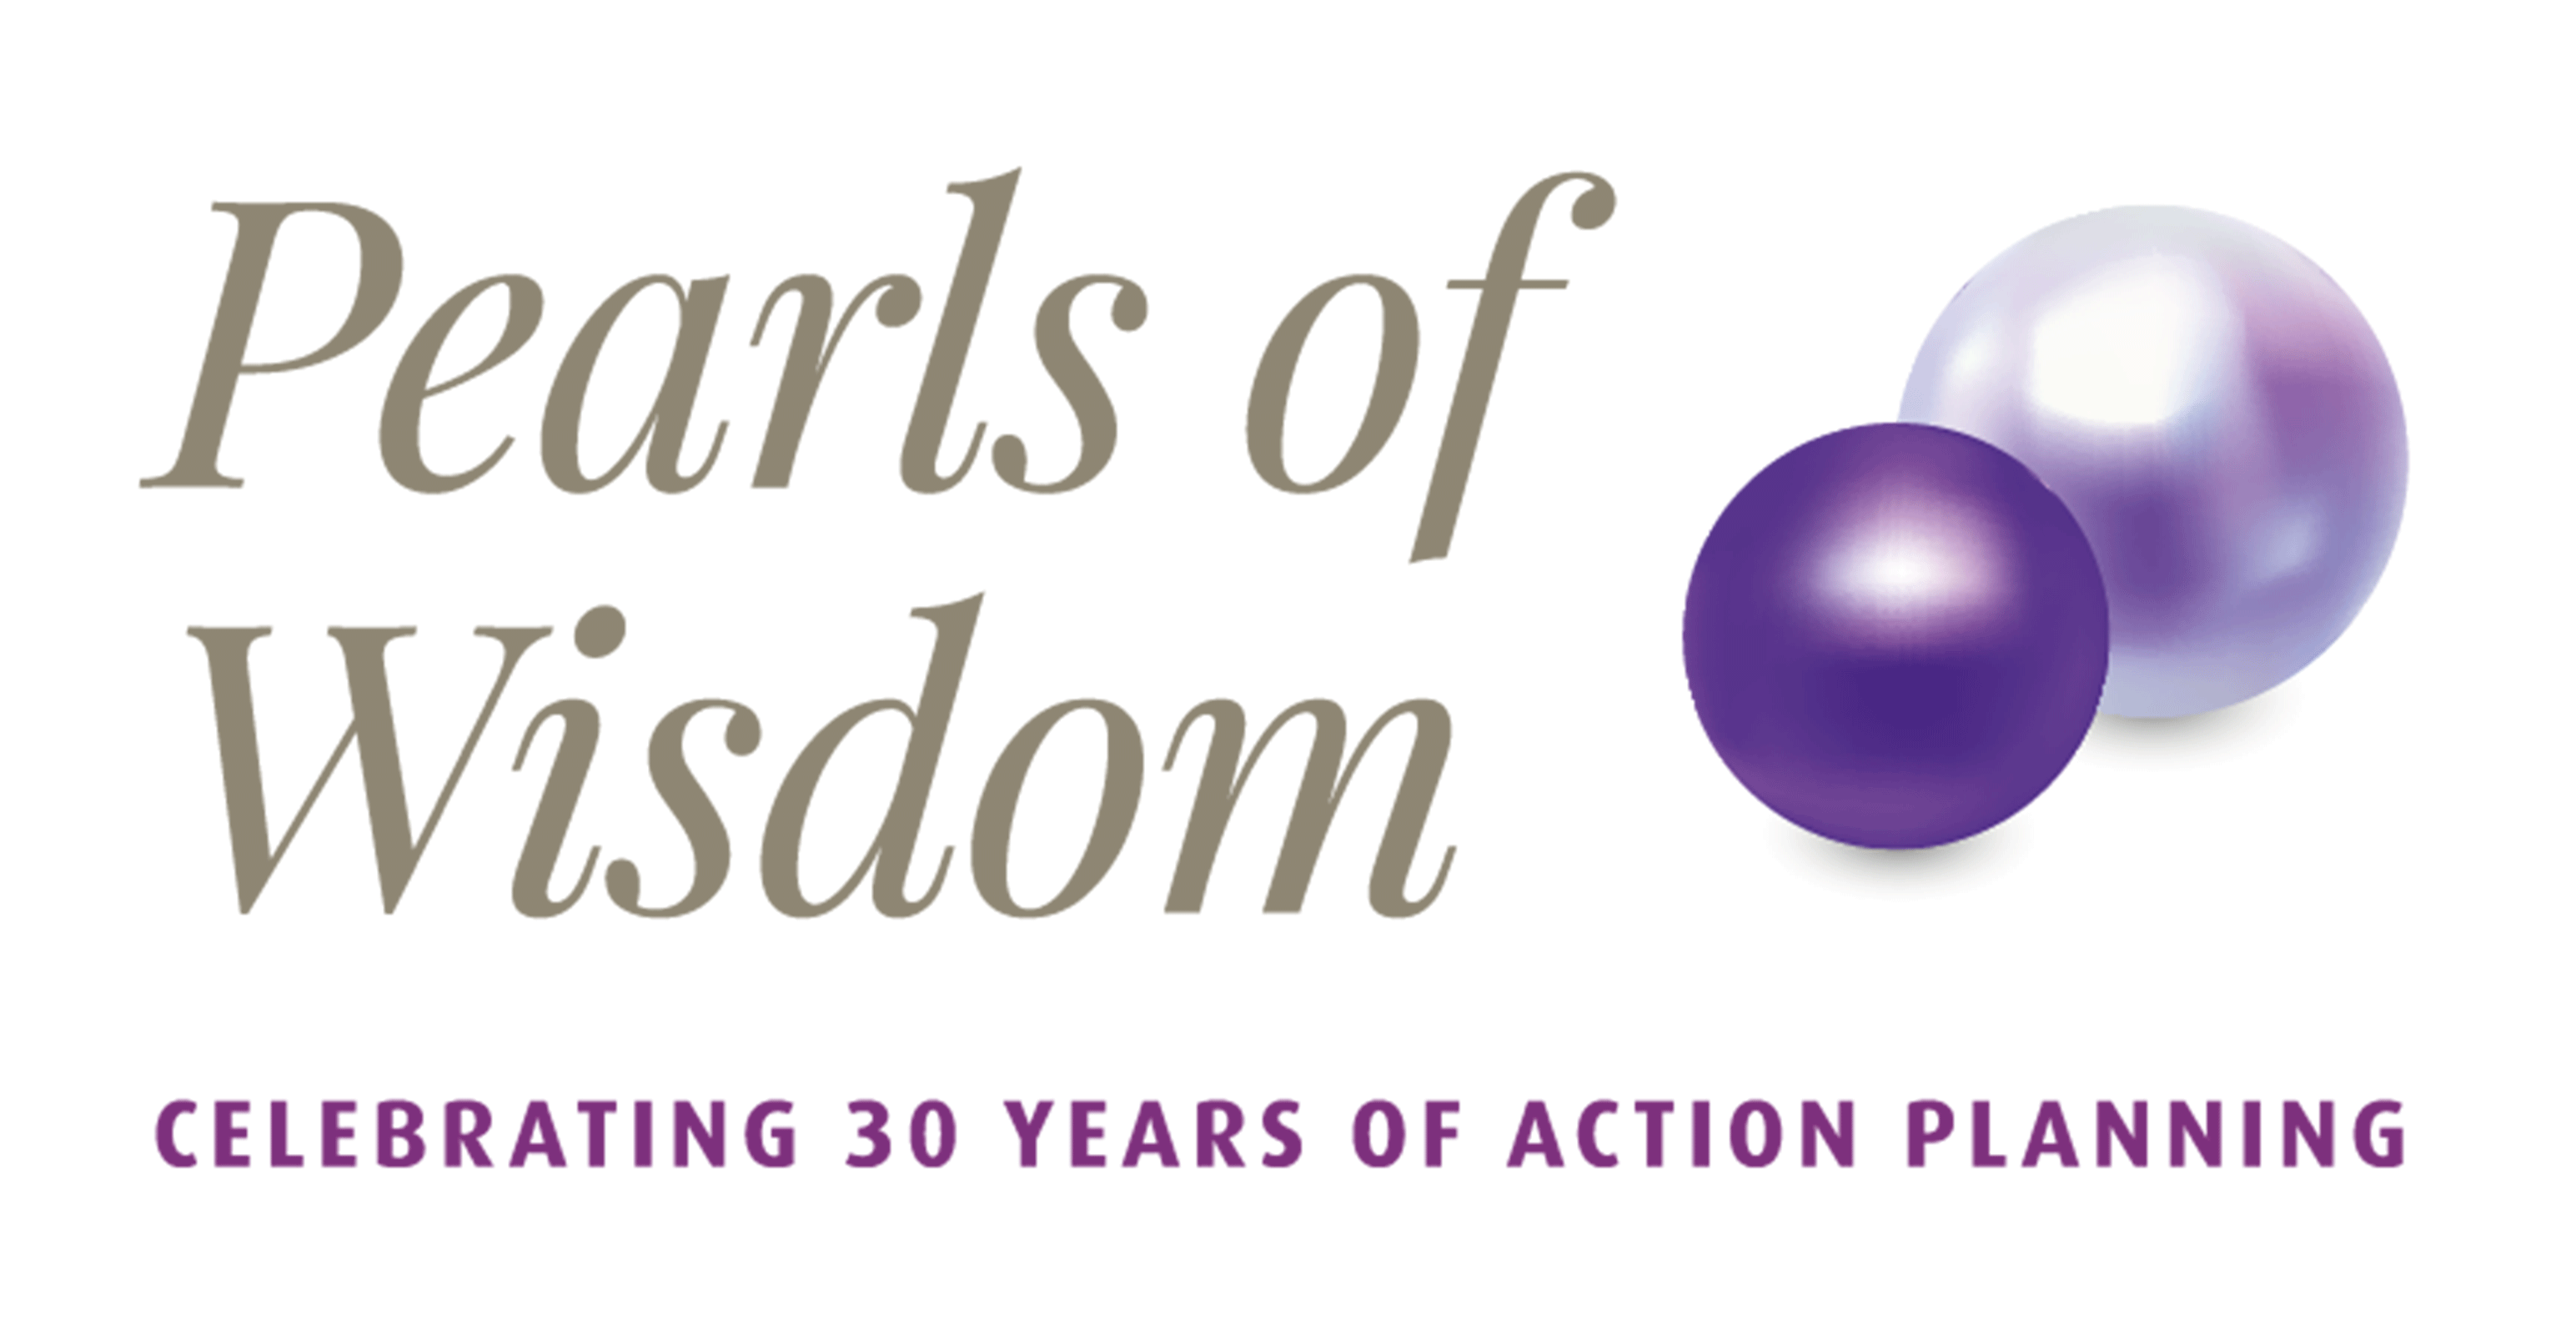 Pearls of Wisdom Logo